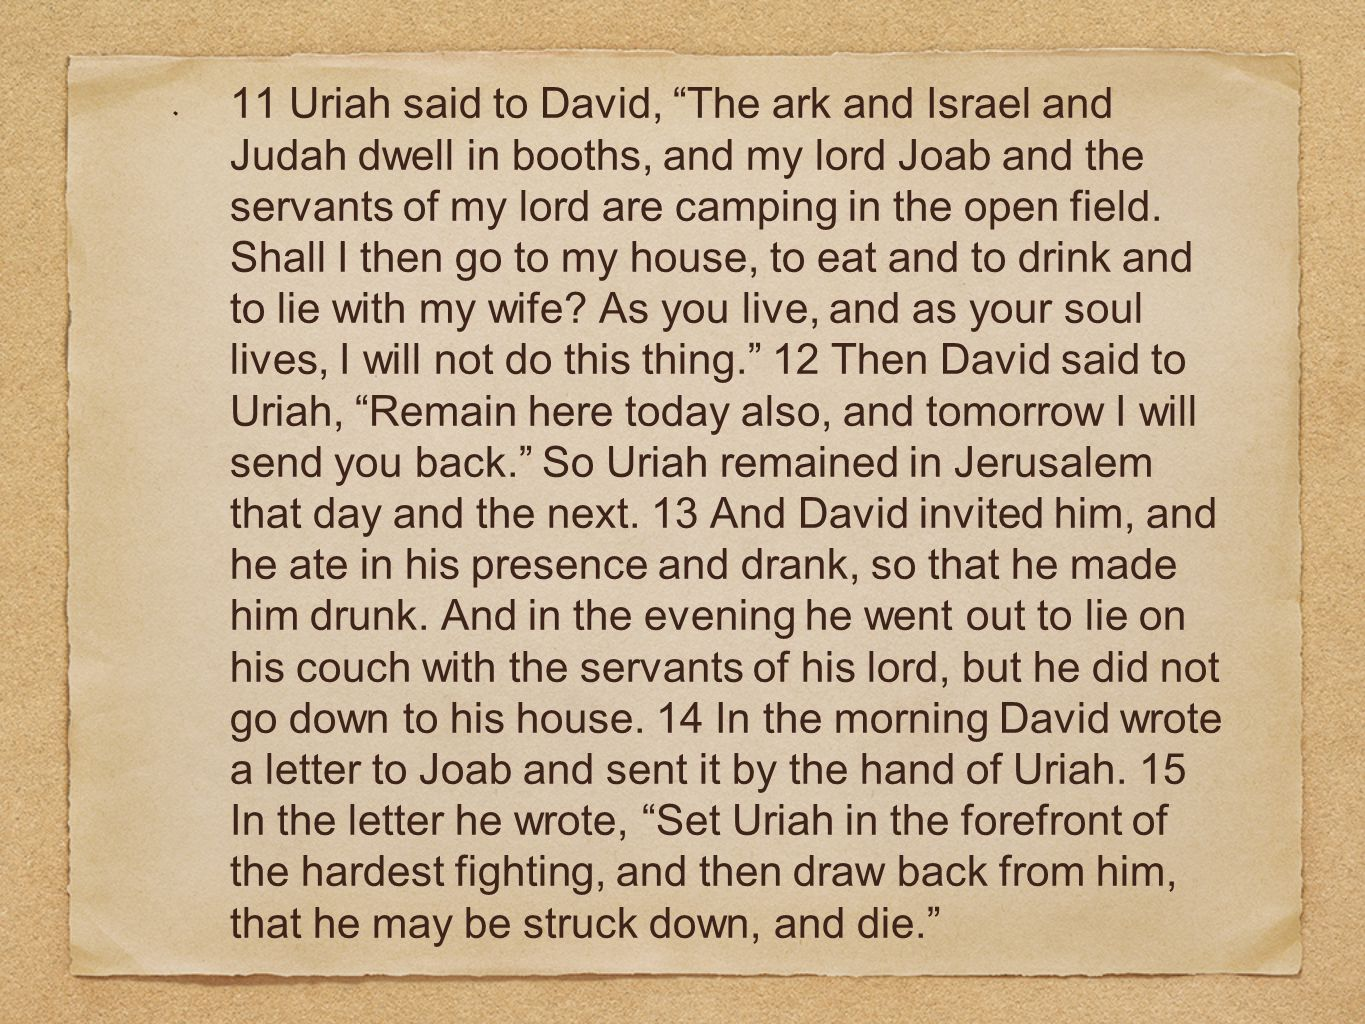 11 Uriah said to David, The ark and Israel and Judah dwell in booths, and my lord Joab and the servants of my lord are camping in the open field.